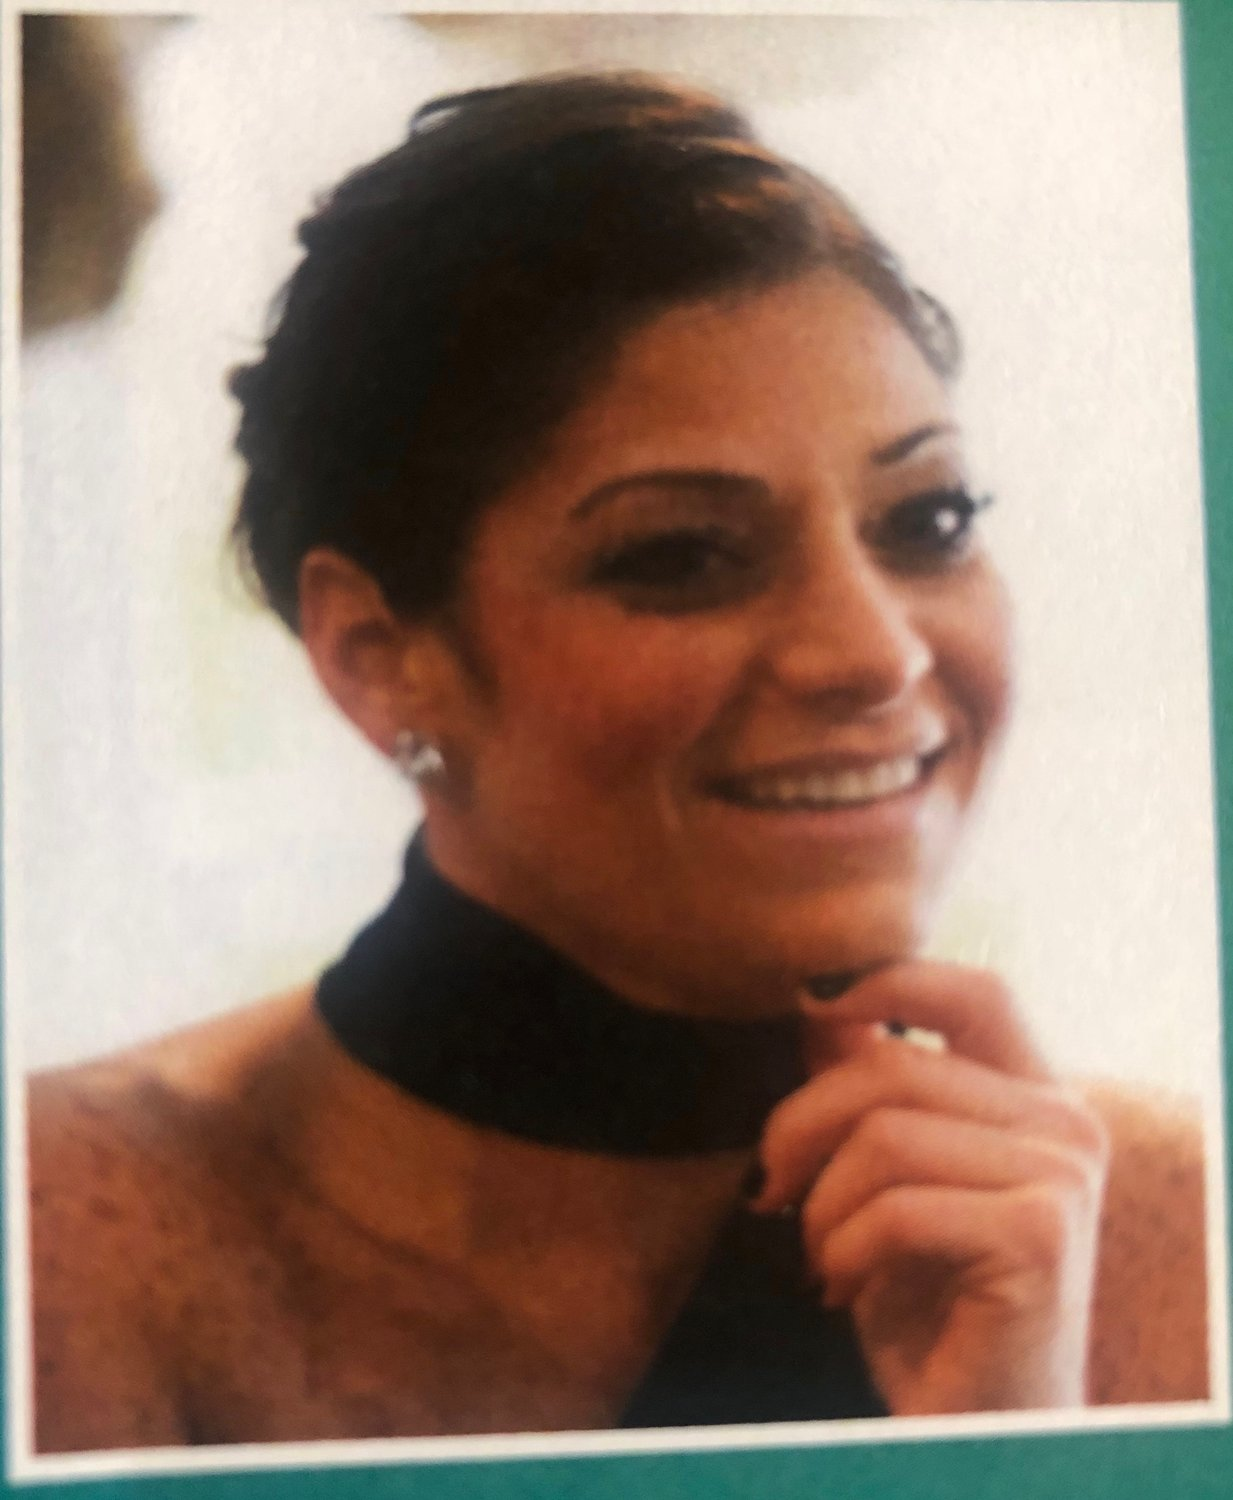 A fundraiser in memory of late former Lynbrook resident and Elmont Memorial High School teacher Dana Costanzo is set for June 9 at Lenox & Park in Rockville Centre.